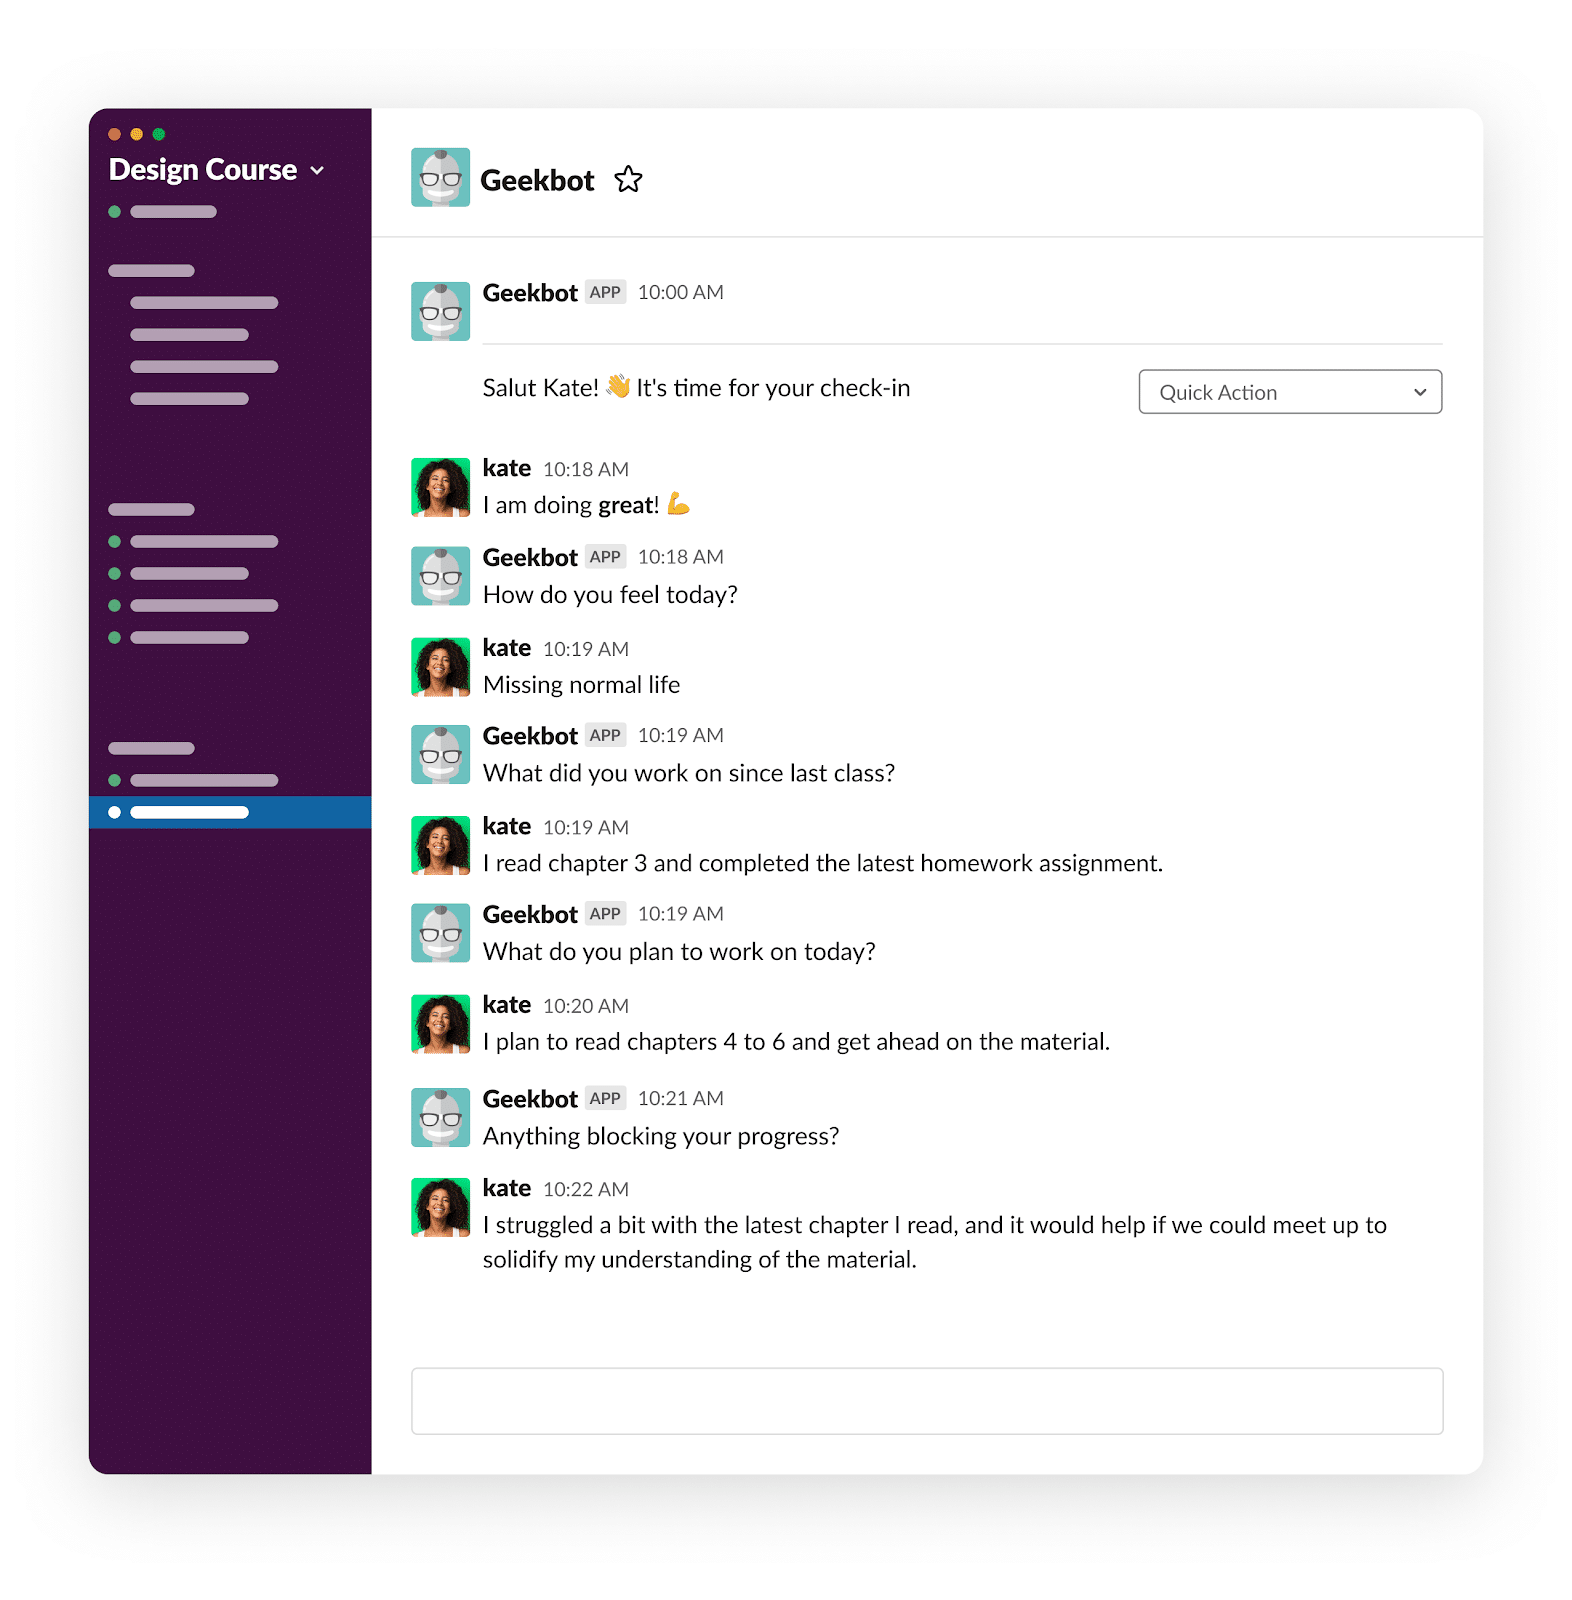 A conversation showing how remote learning it simplified by utilizing Geekbot.